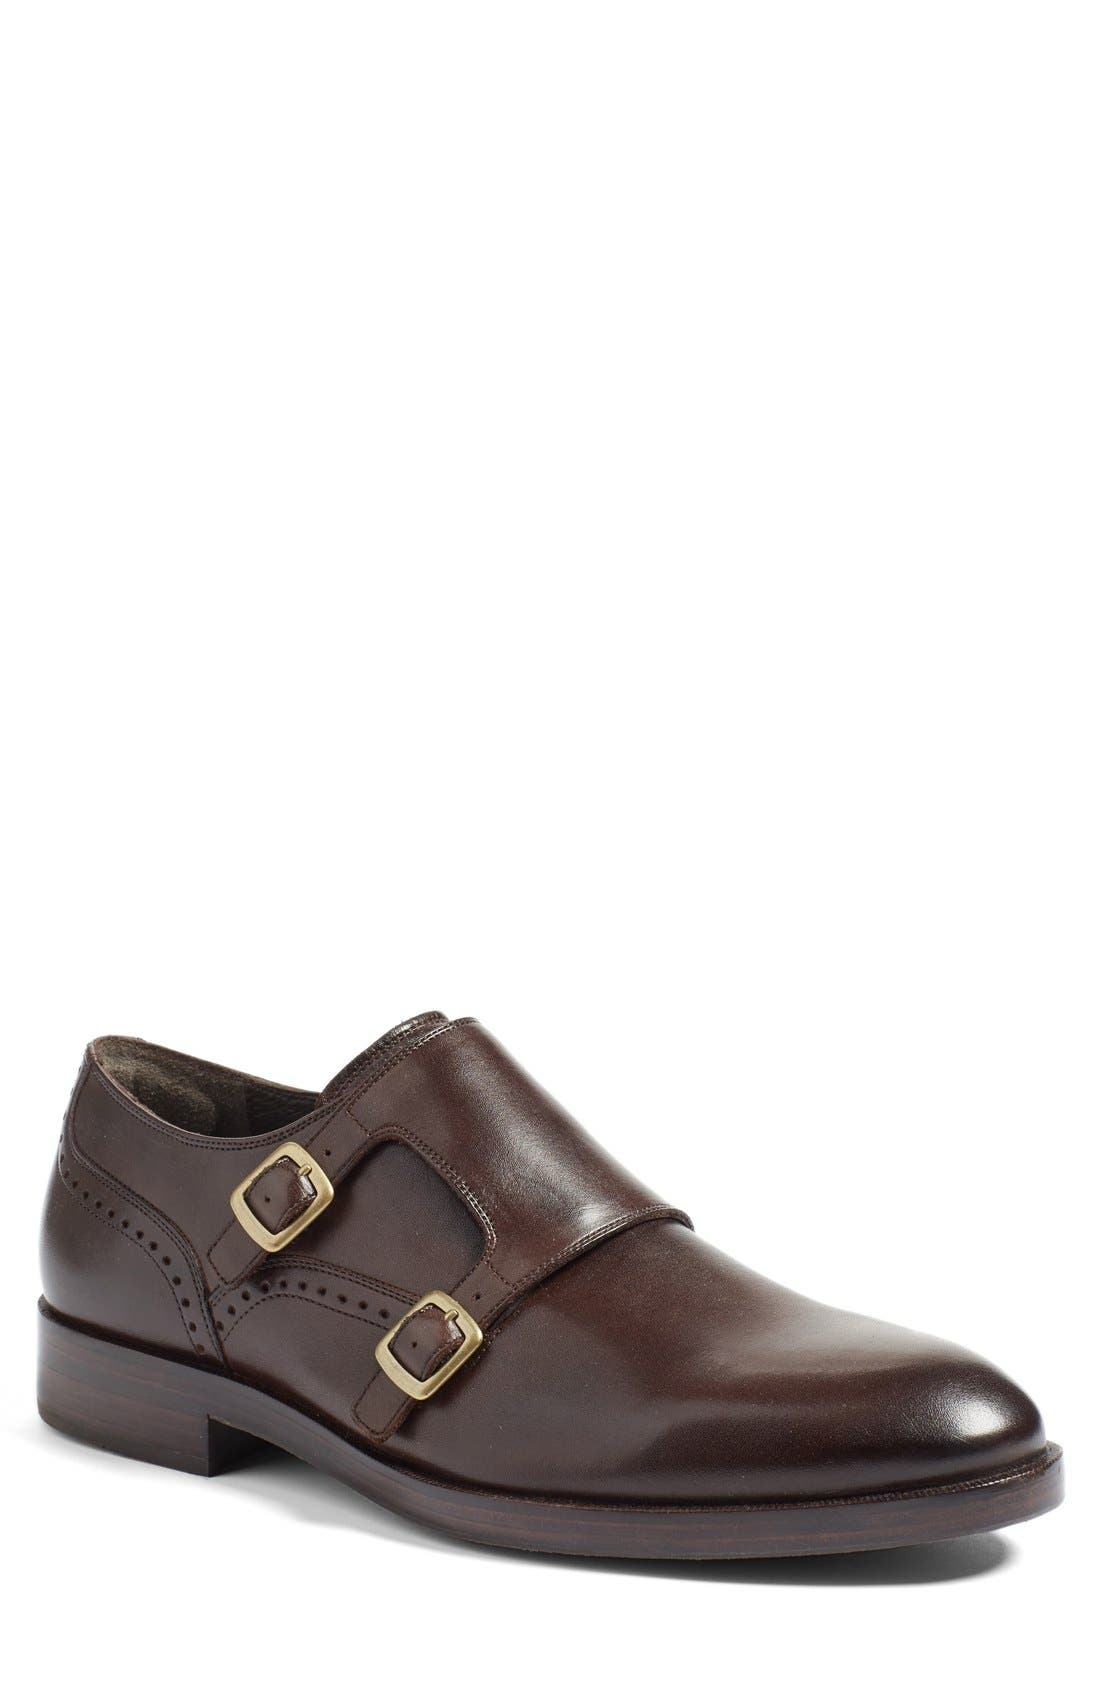 'Harrison' Double Monk Strap Shoe,                         Main,                         color, 205